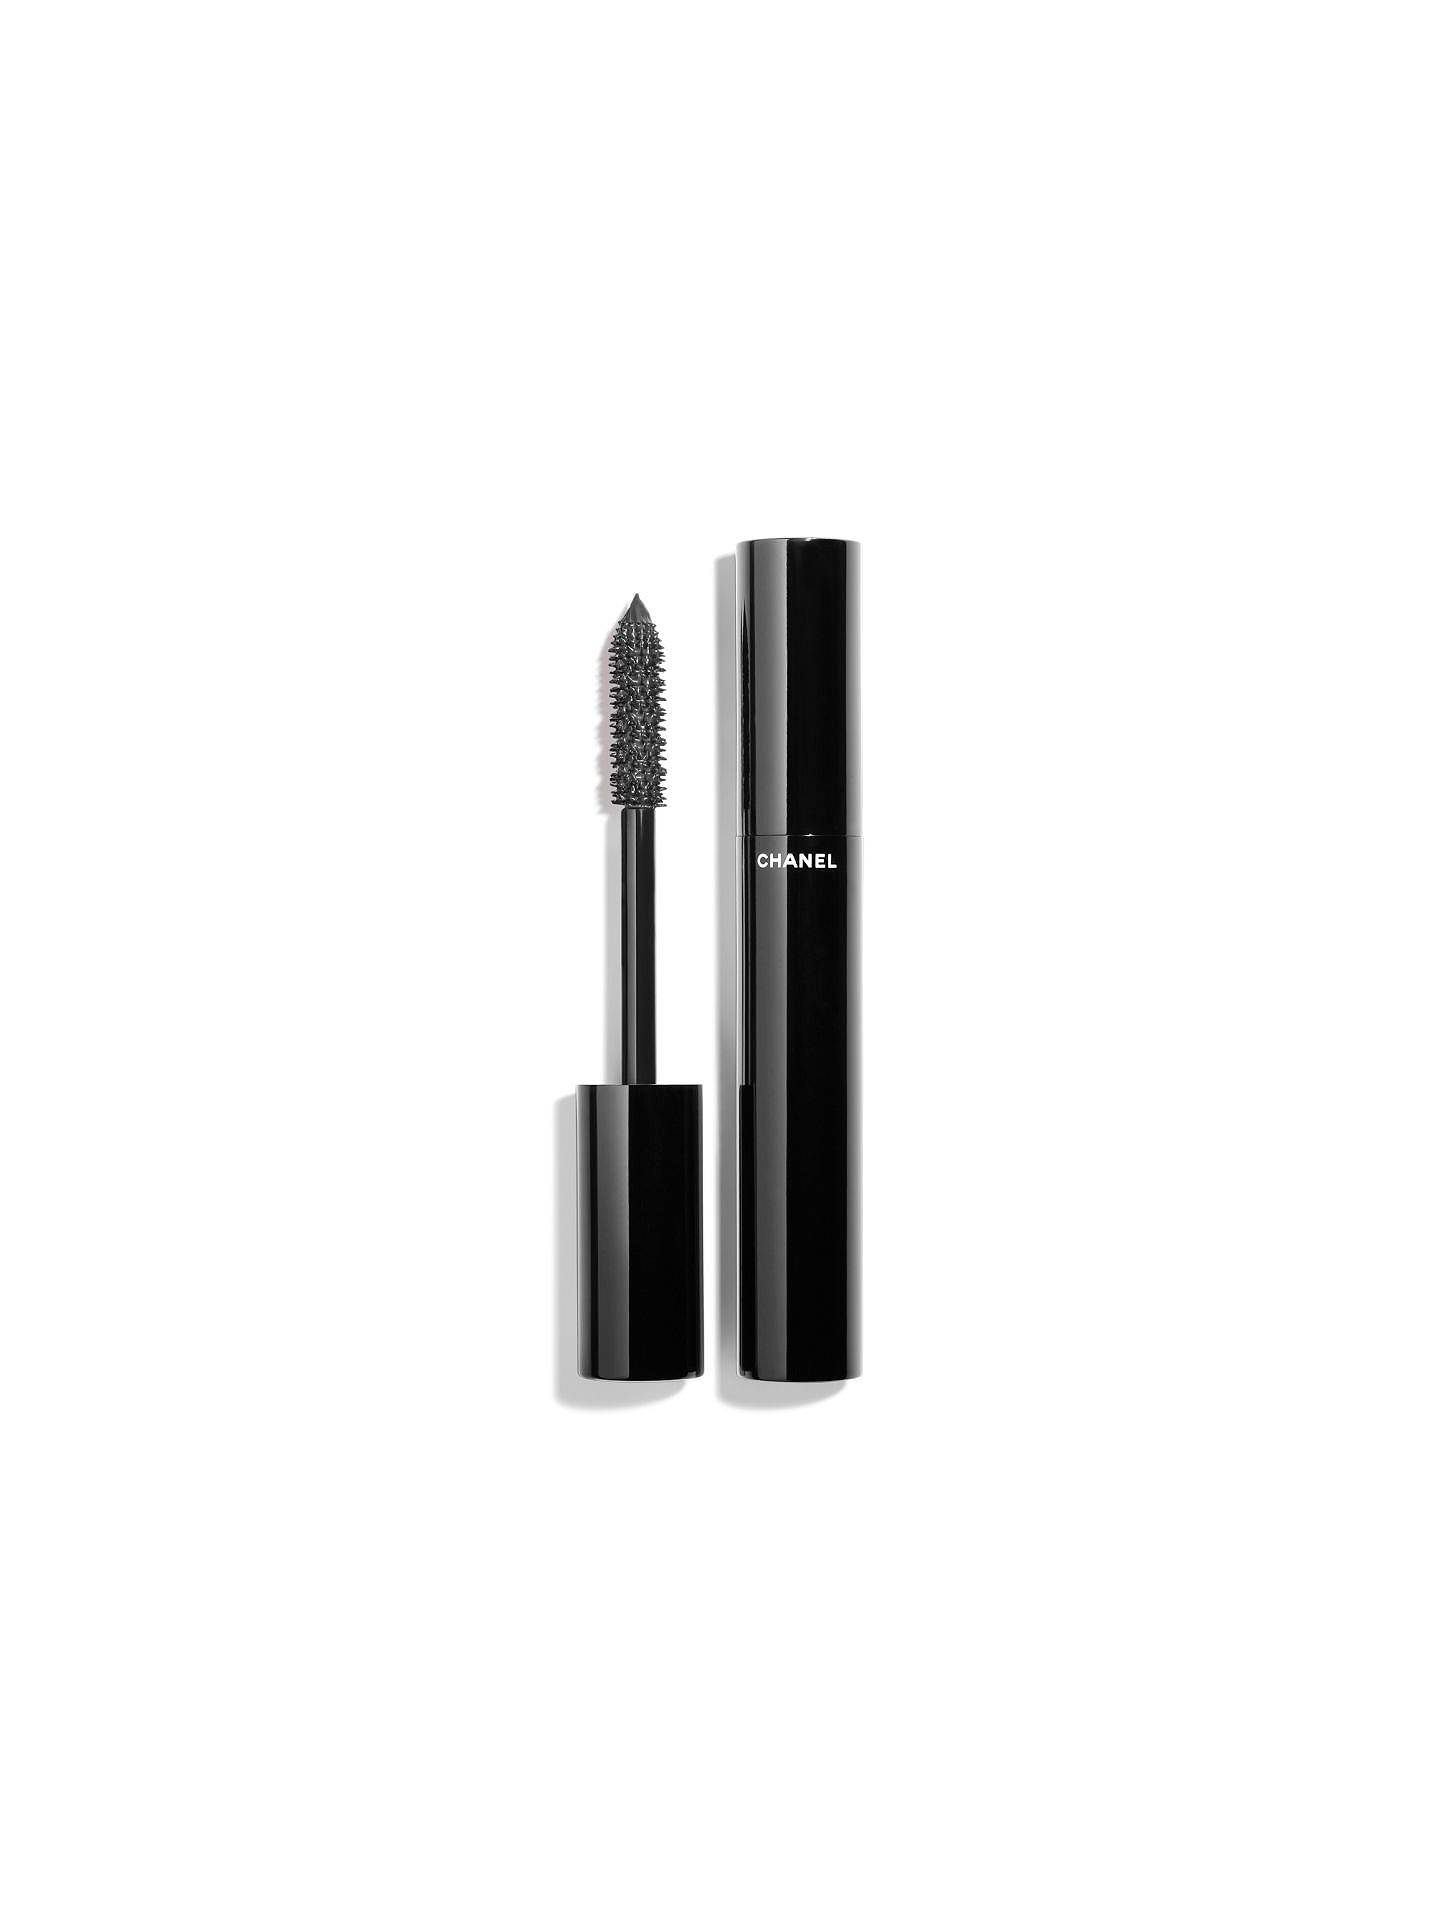 BuyCHANEL LE VOLUME DE CHANEL Mascara, 10 Noir Online at johnlewis.com